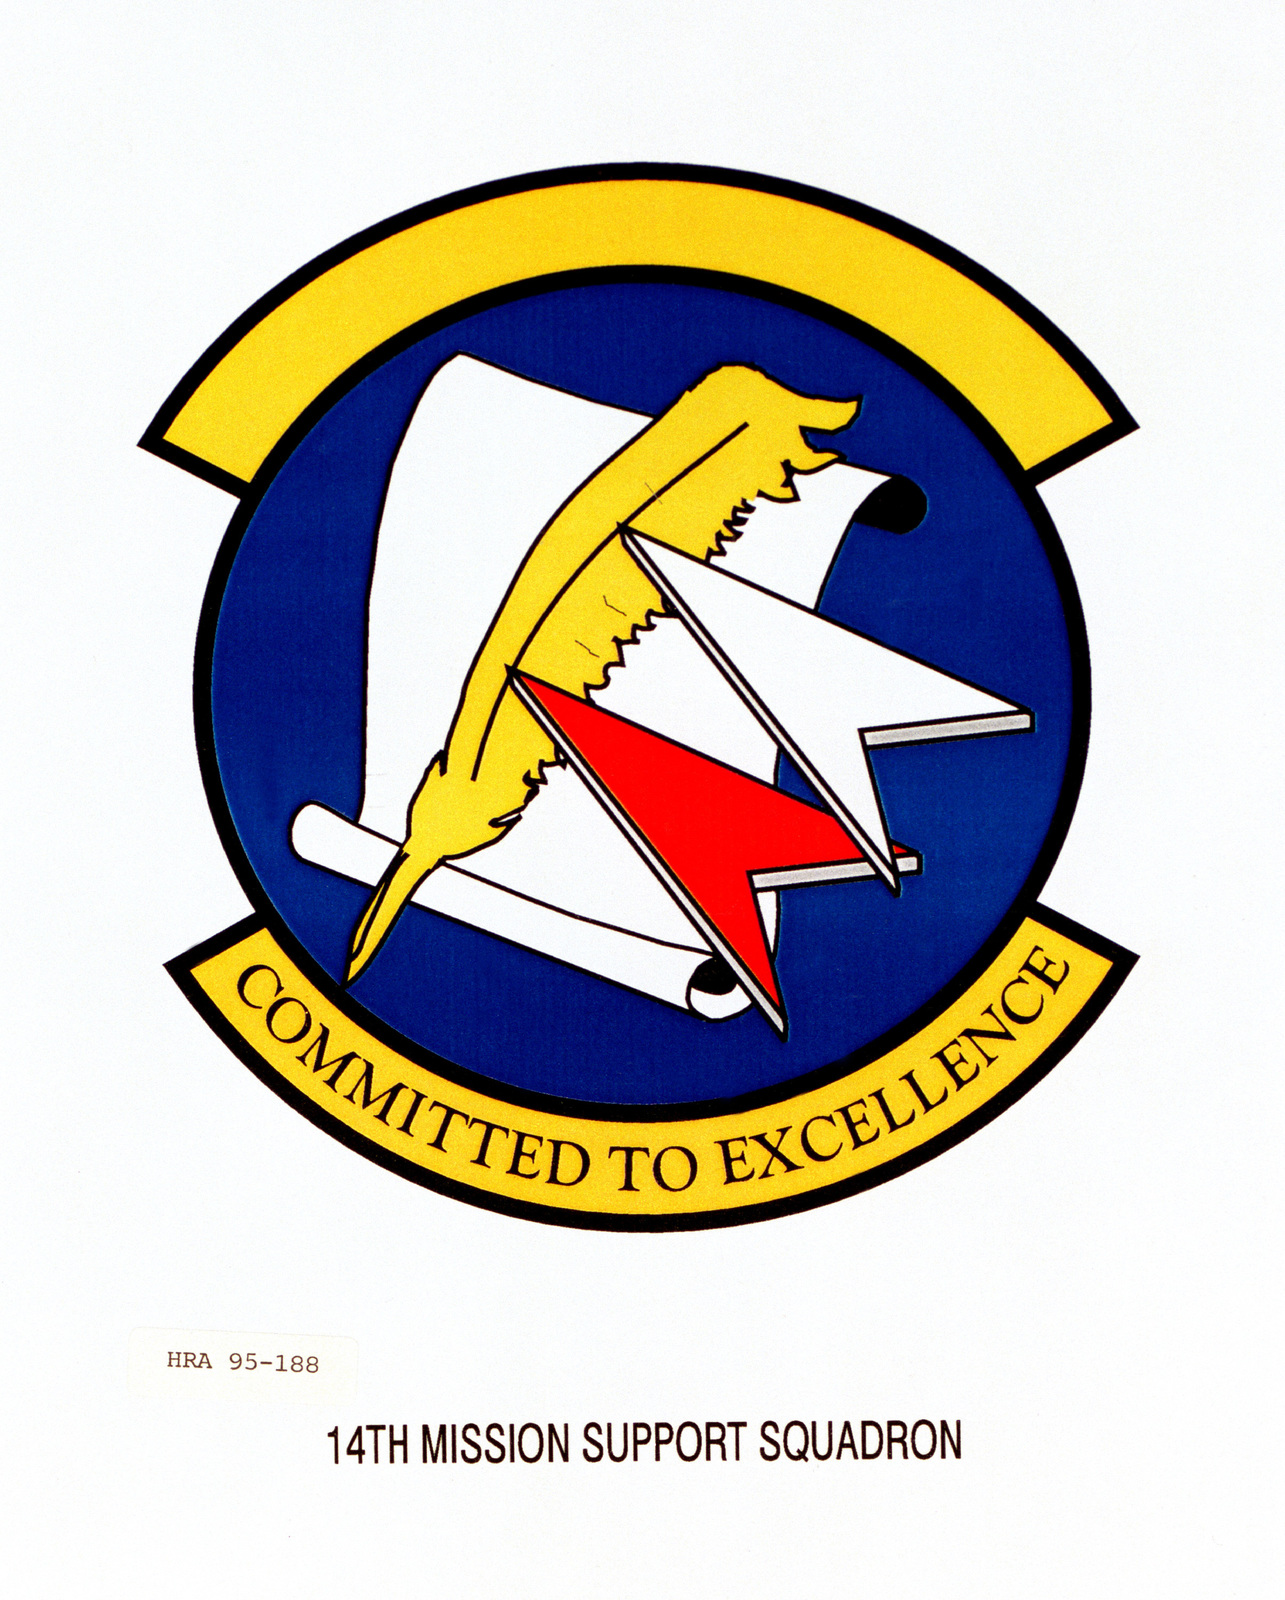 Approved Insignia for the 14th Mission Support Squadron. Exact Date Shot Unknown